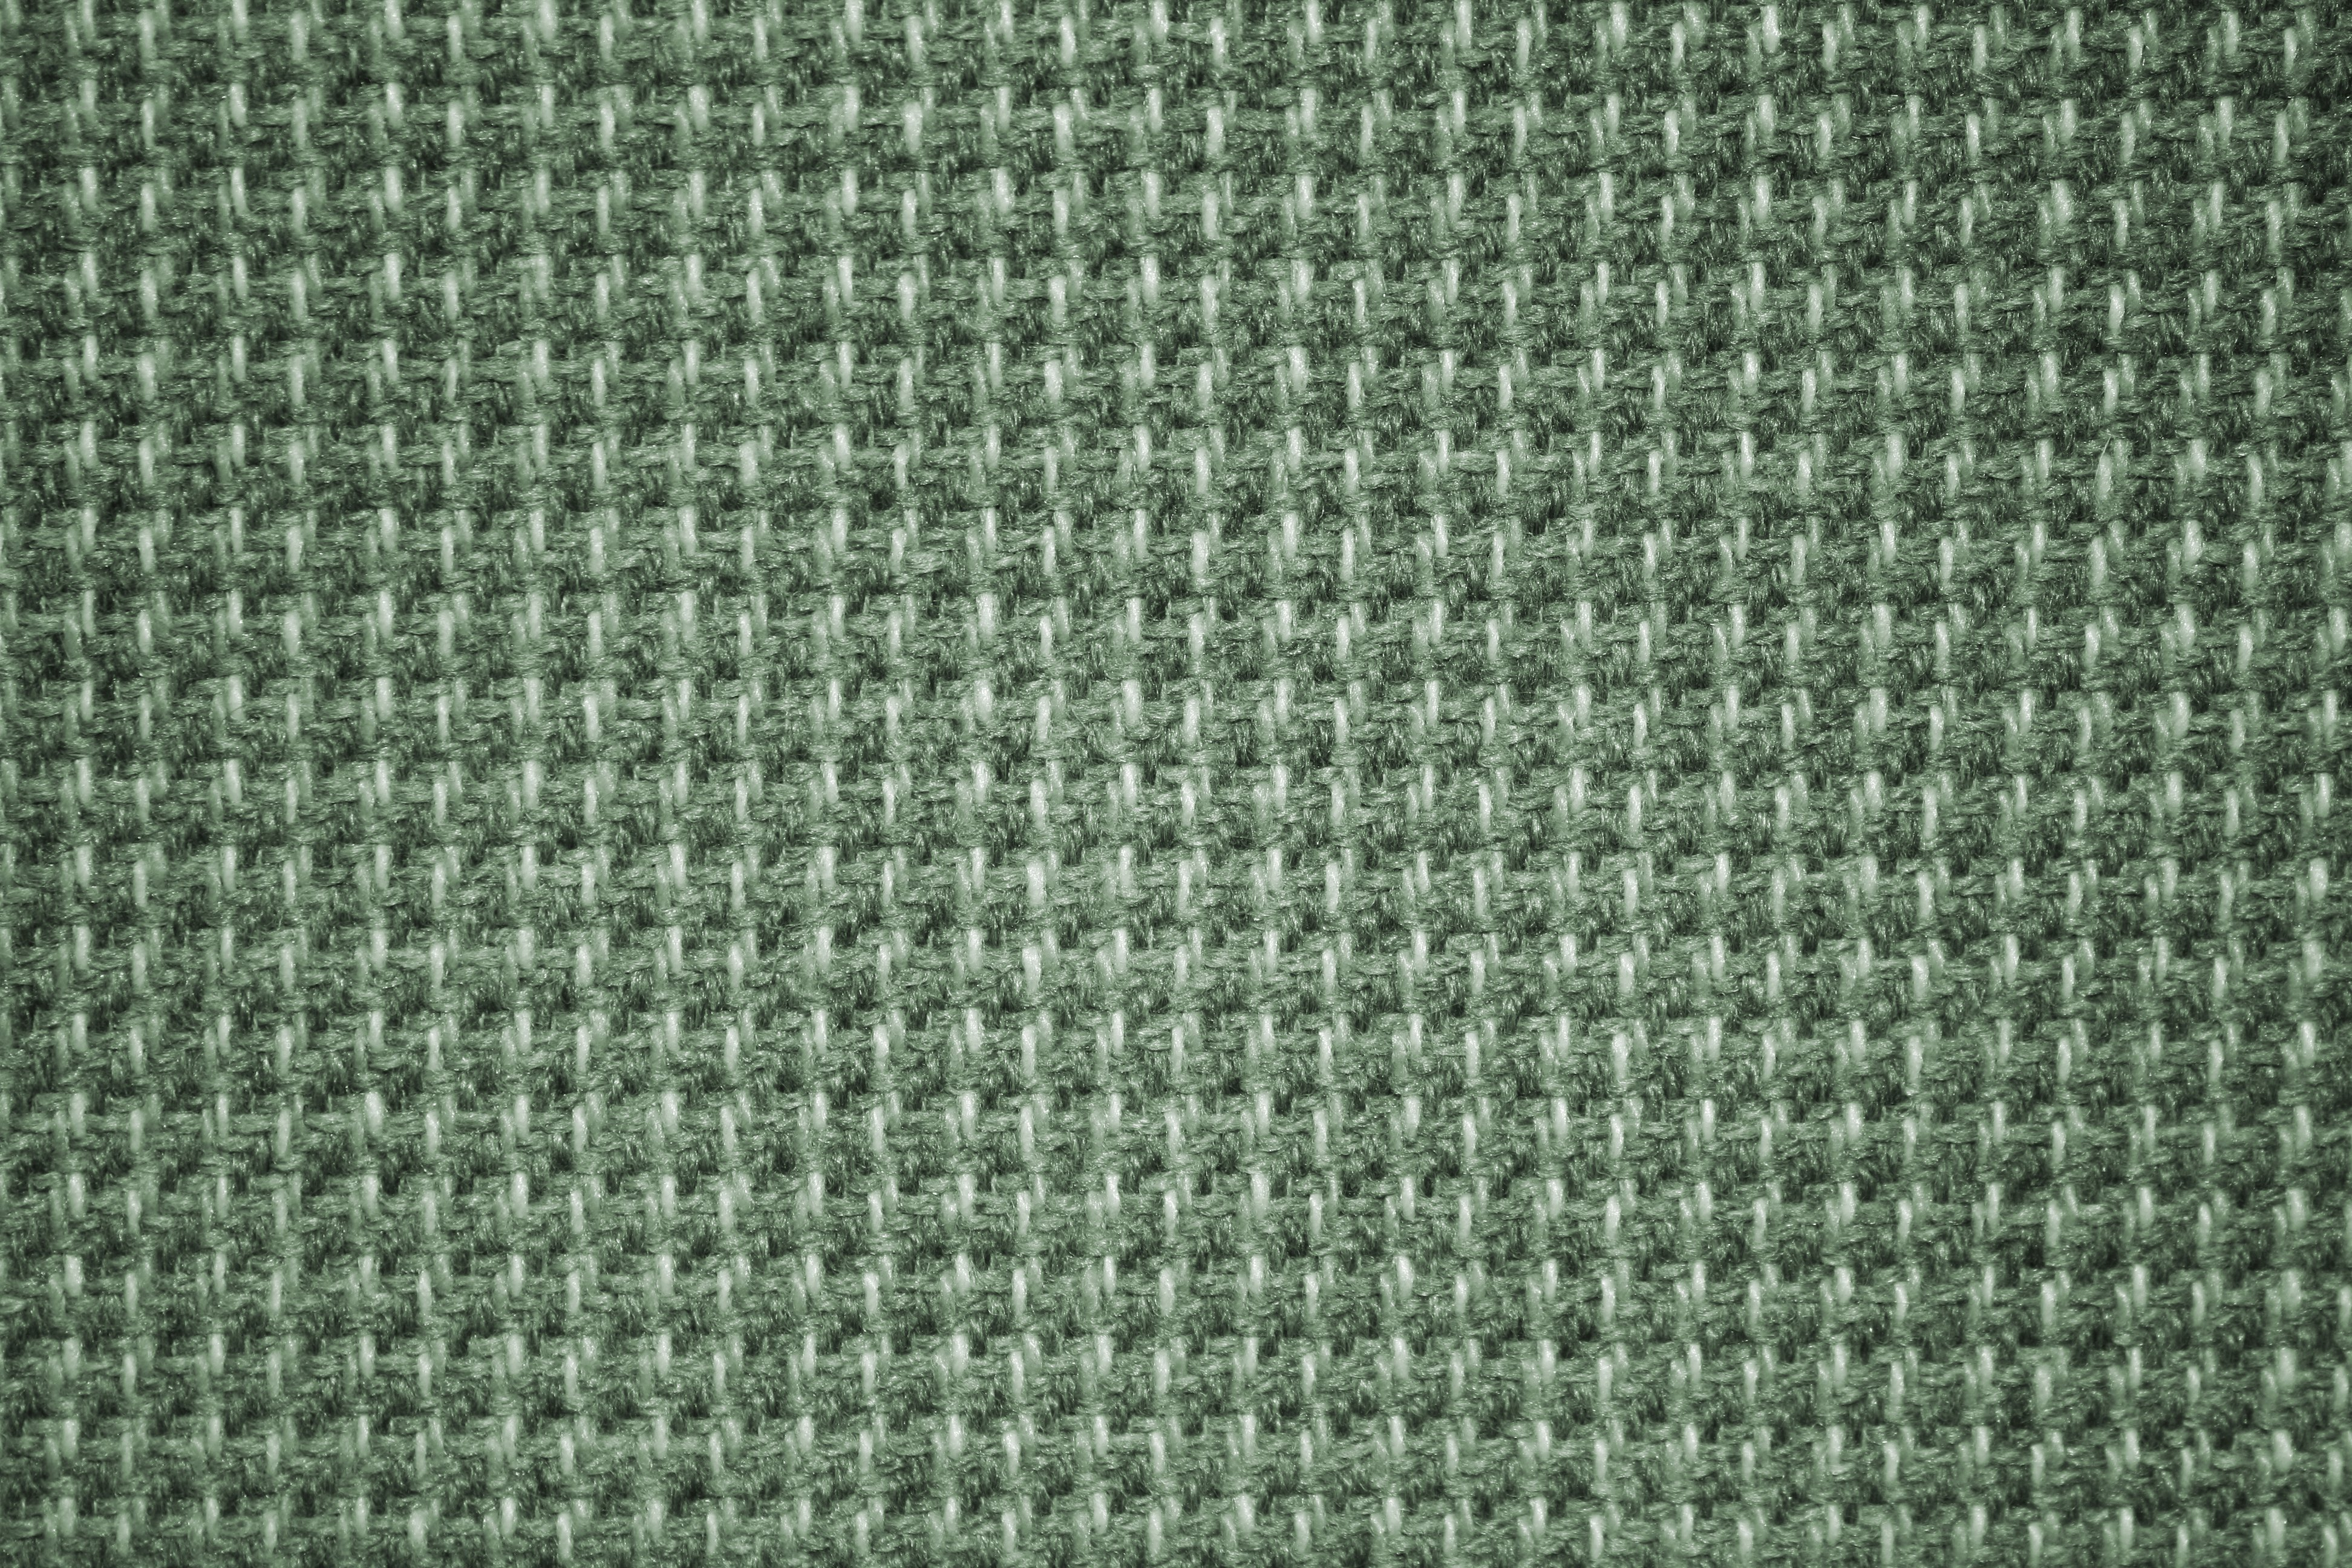 green upholstery fabric texture